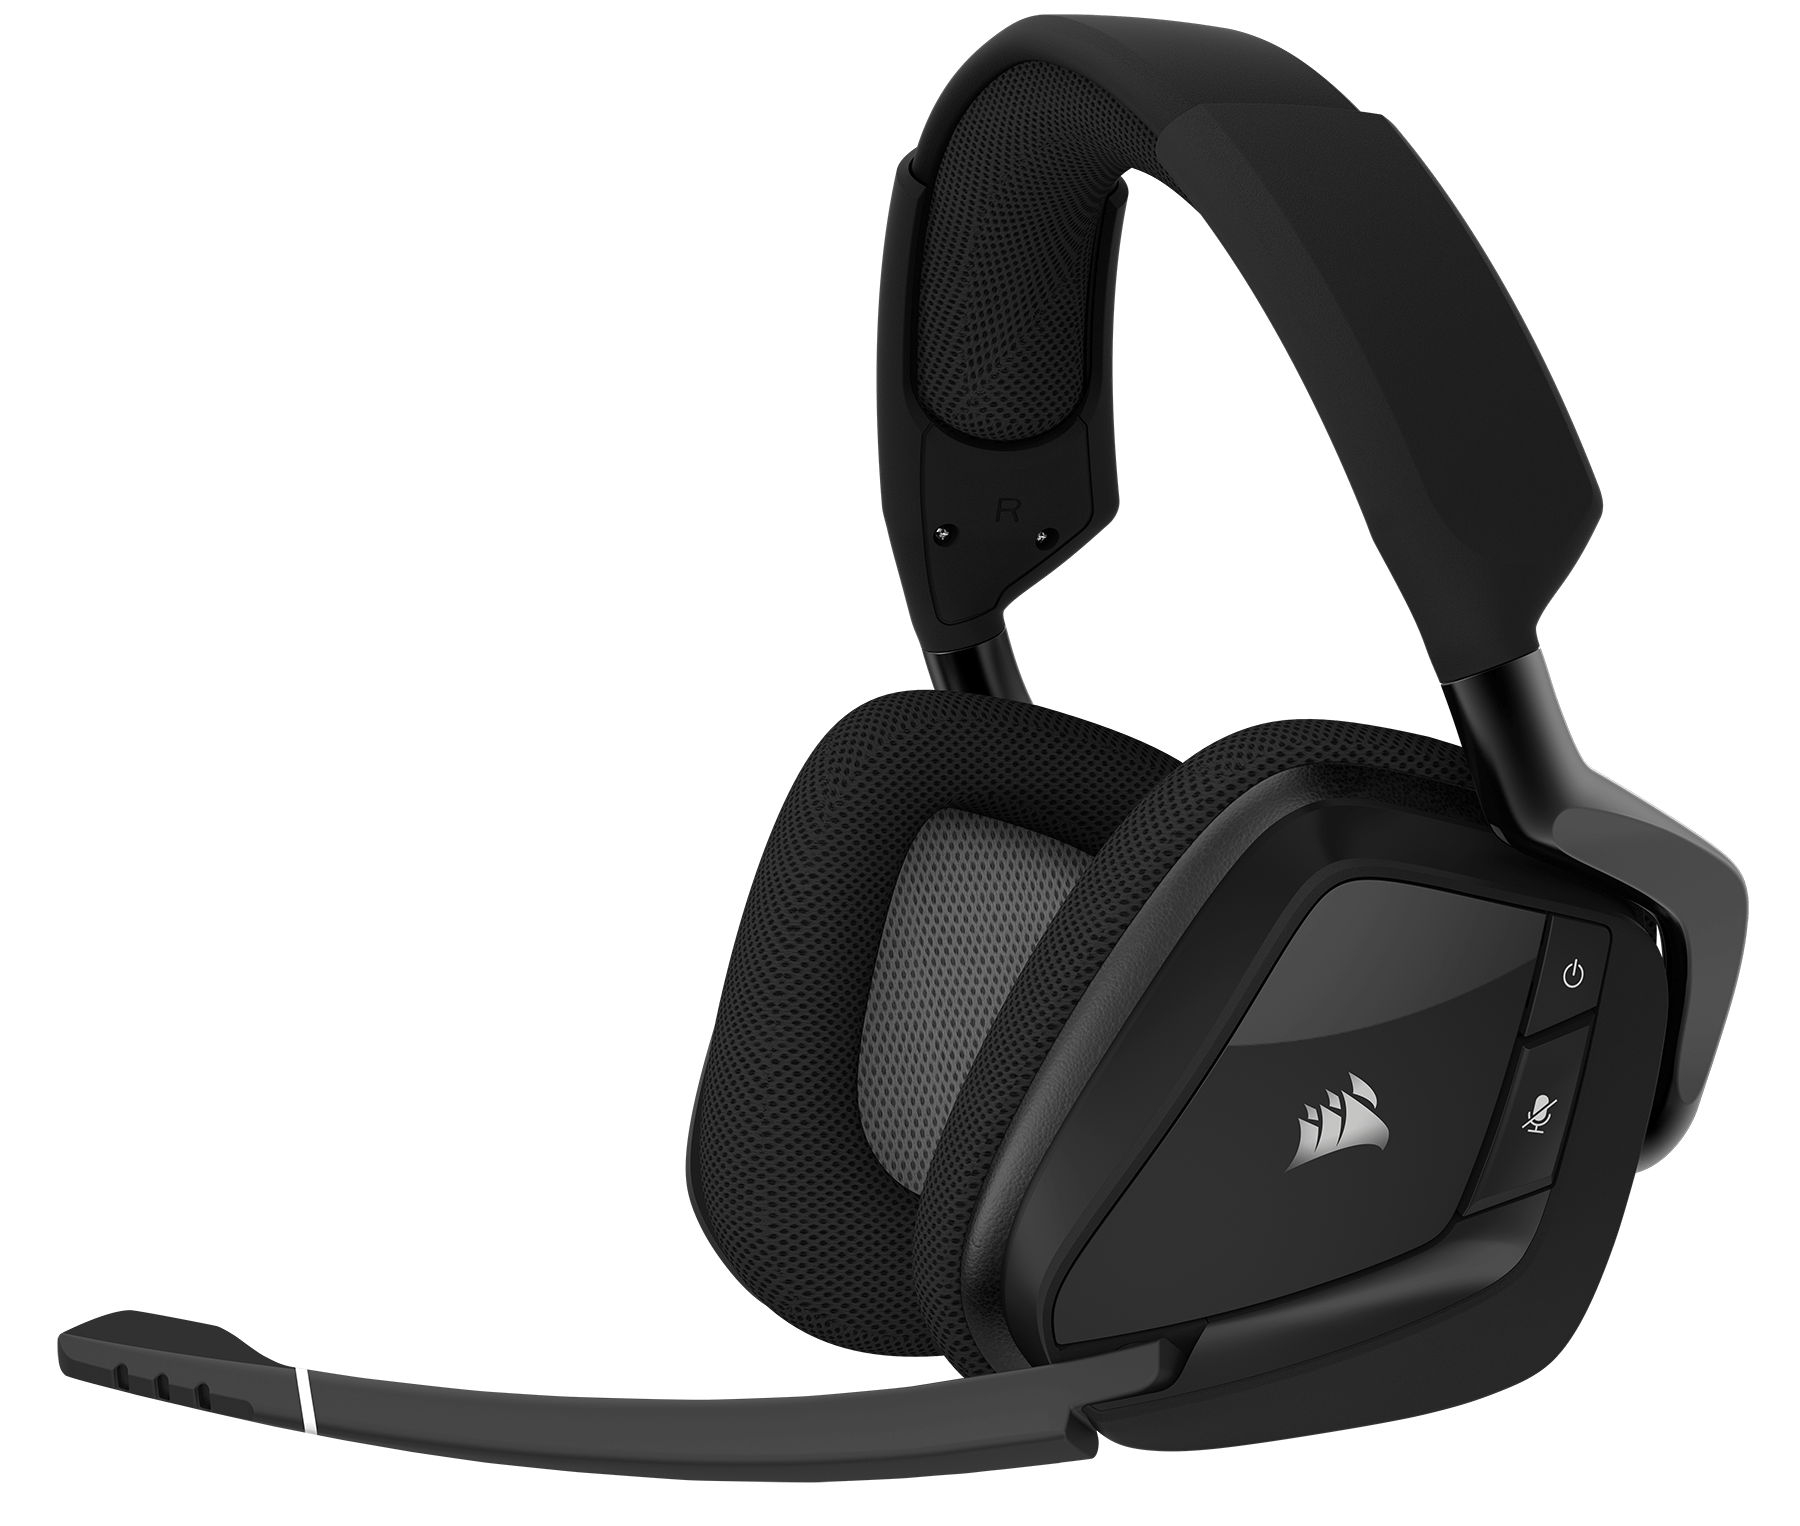 Corsair Void Pro RGB Wireless Gaming Headphone